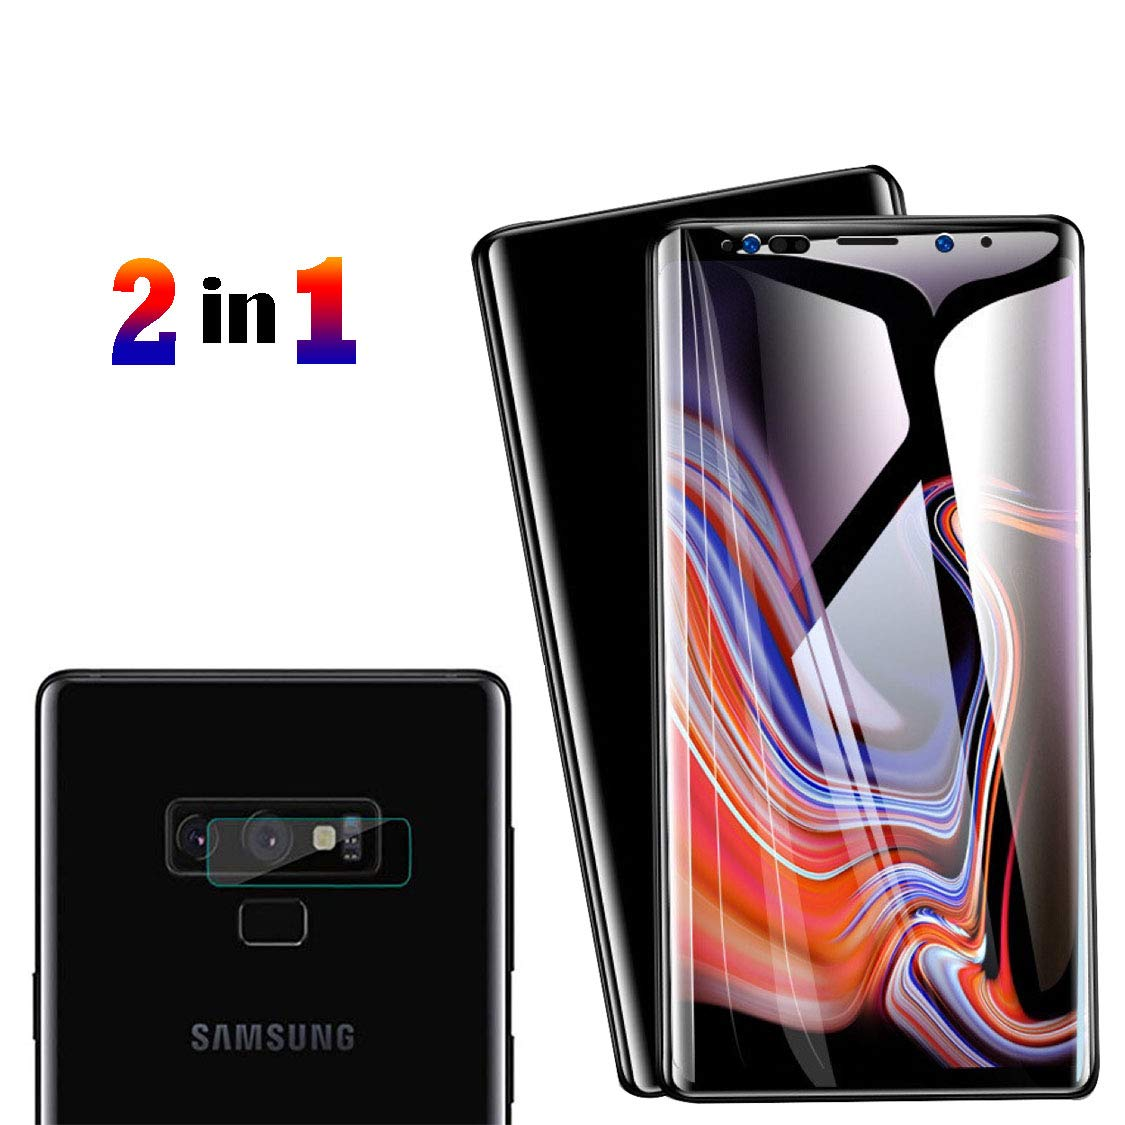 [2 Pack] Galaxy Note 9 Screen Protector Tempered Glass, Include a Camera Lens Protector with [Case Friendly] [Full Screen Coverage] [HD Clear] [Touch Responsive] for Note9 [6.4 inches] by Bocianelli